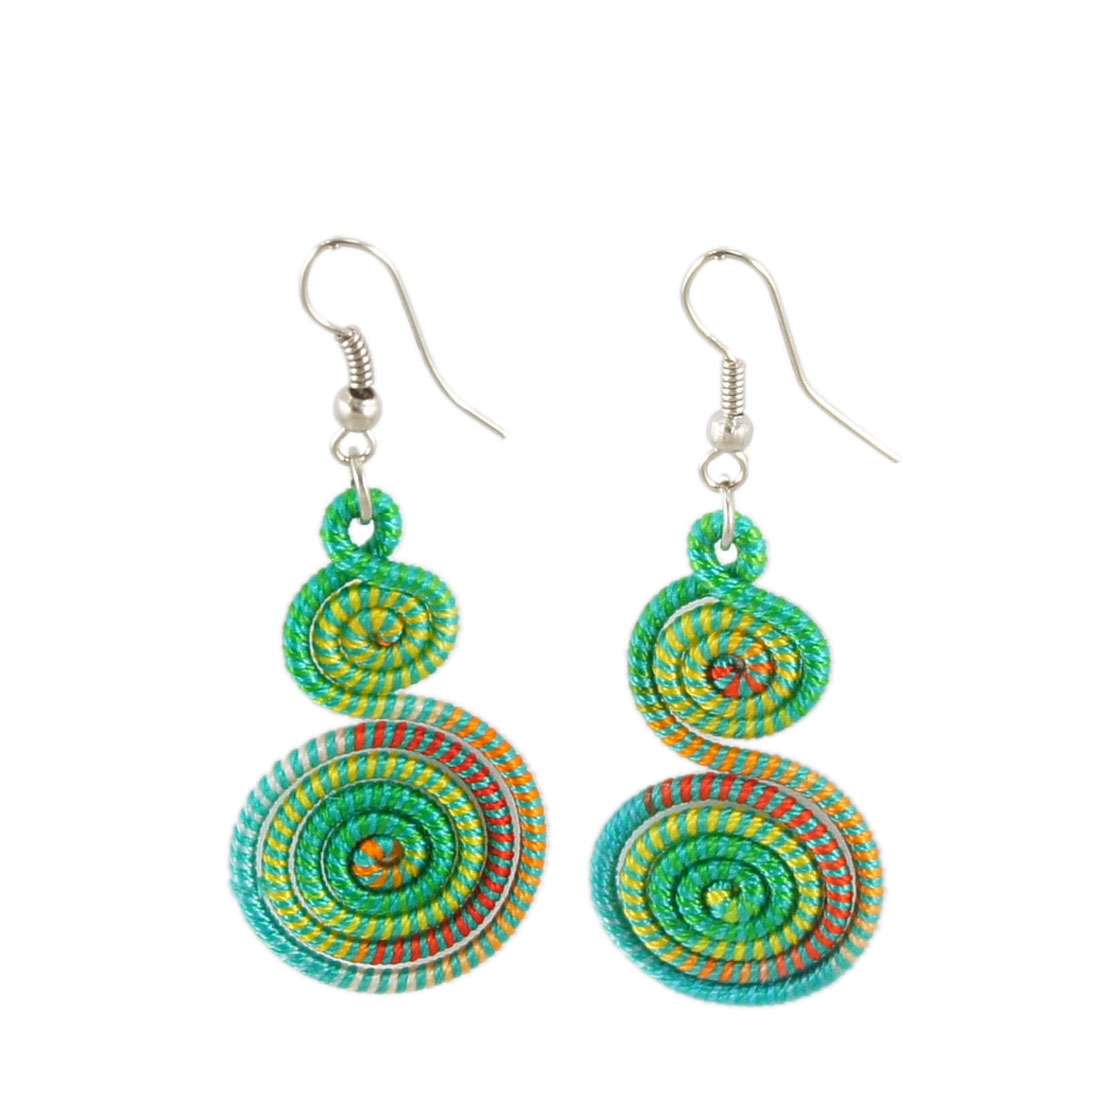 Pair Teal Blue Colorful Nylon Double Spiral Pendant Fish Hook Earrings